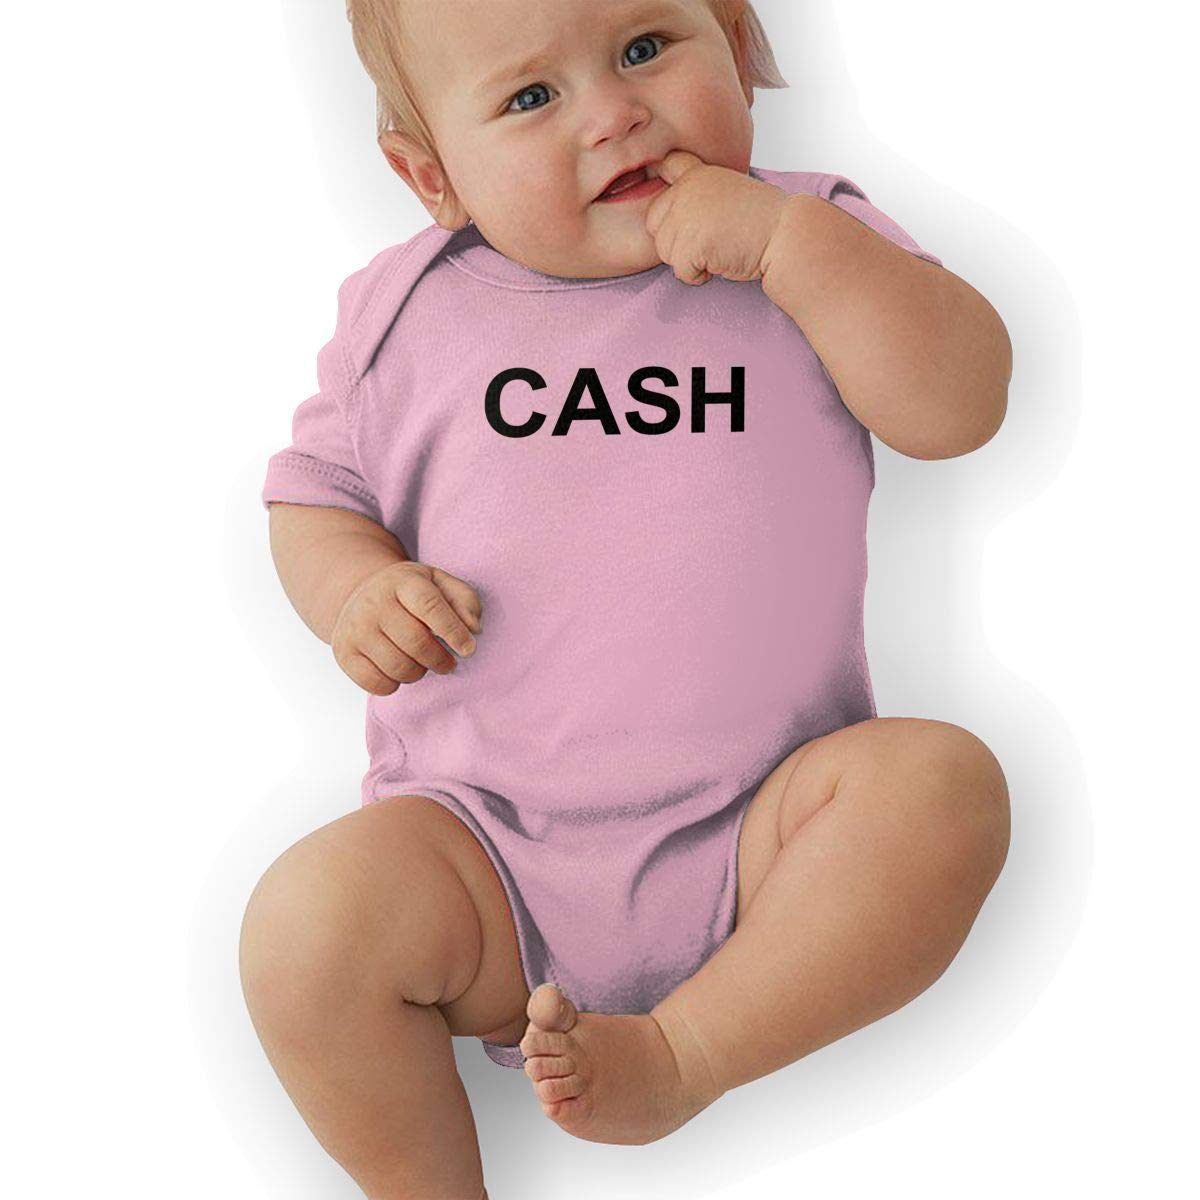 Bodysuits Clothes Onesies Jumpsuits Outfits Pink HappyLifea Cash Logo Baby Pajamas